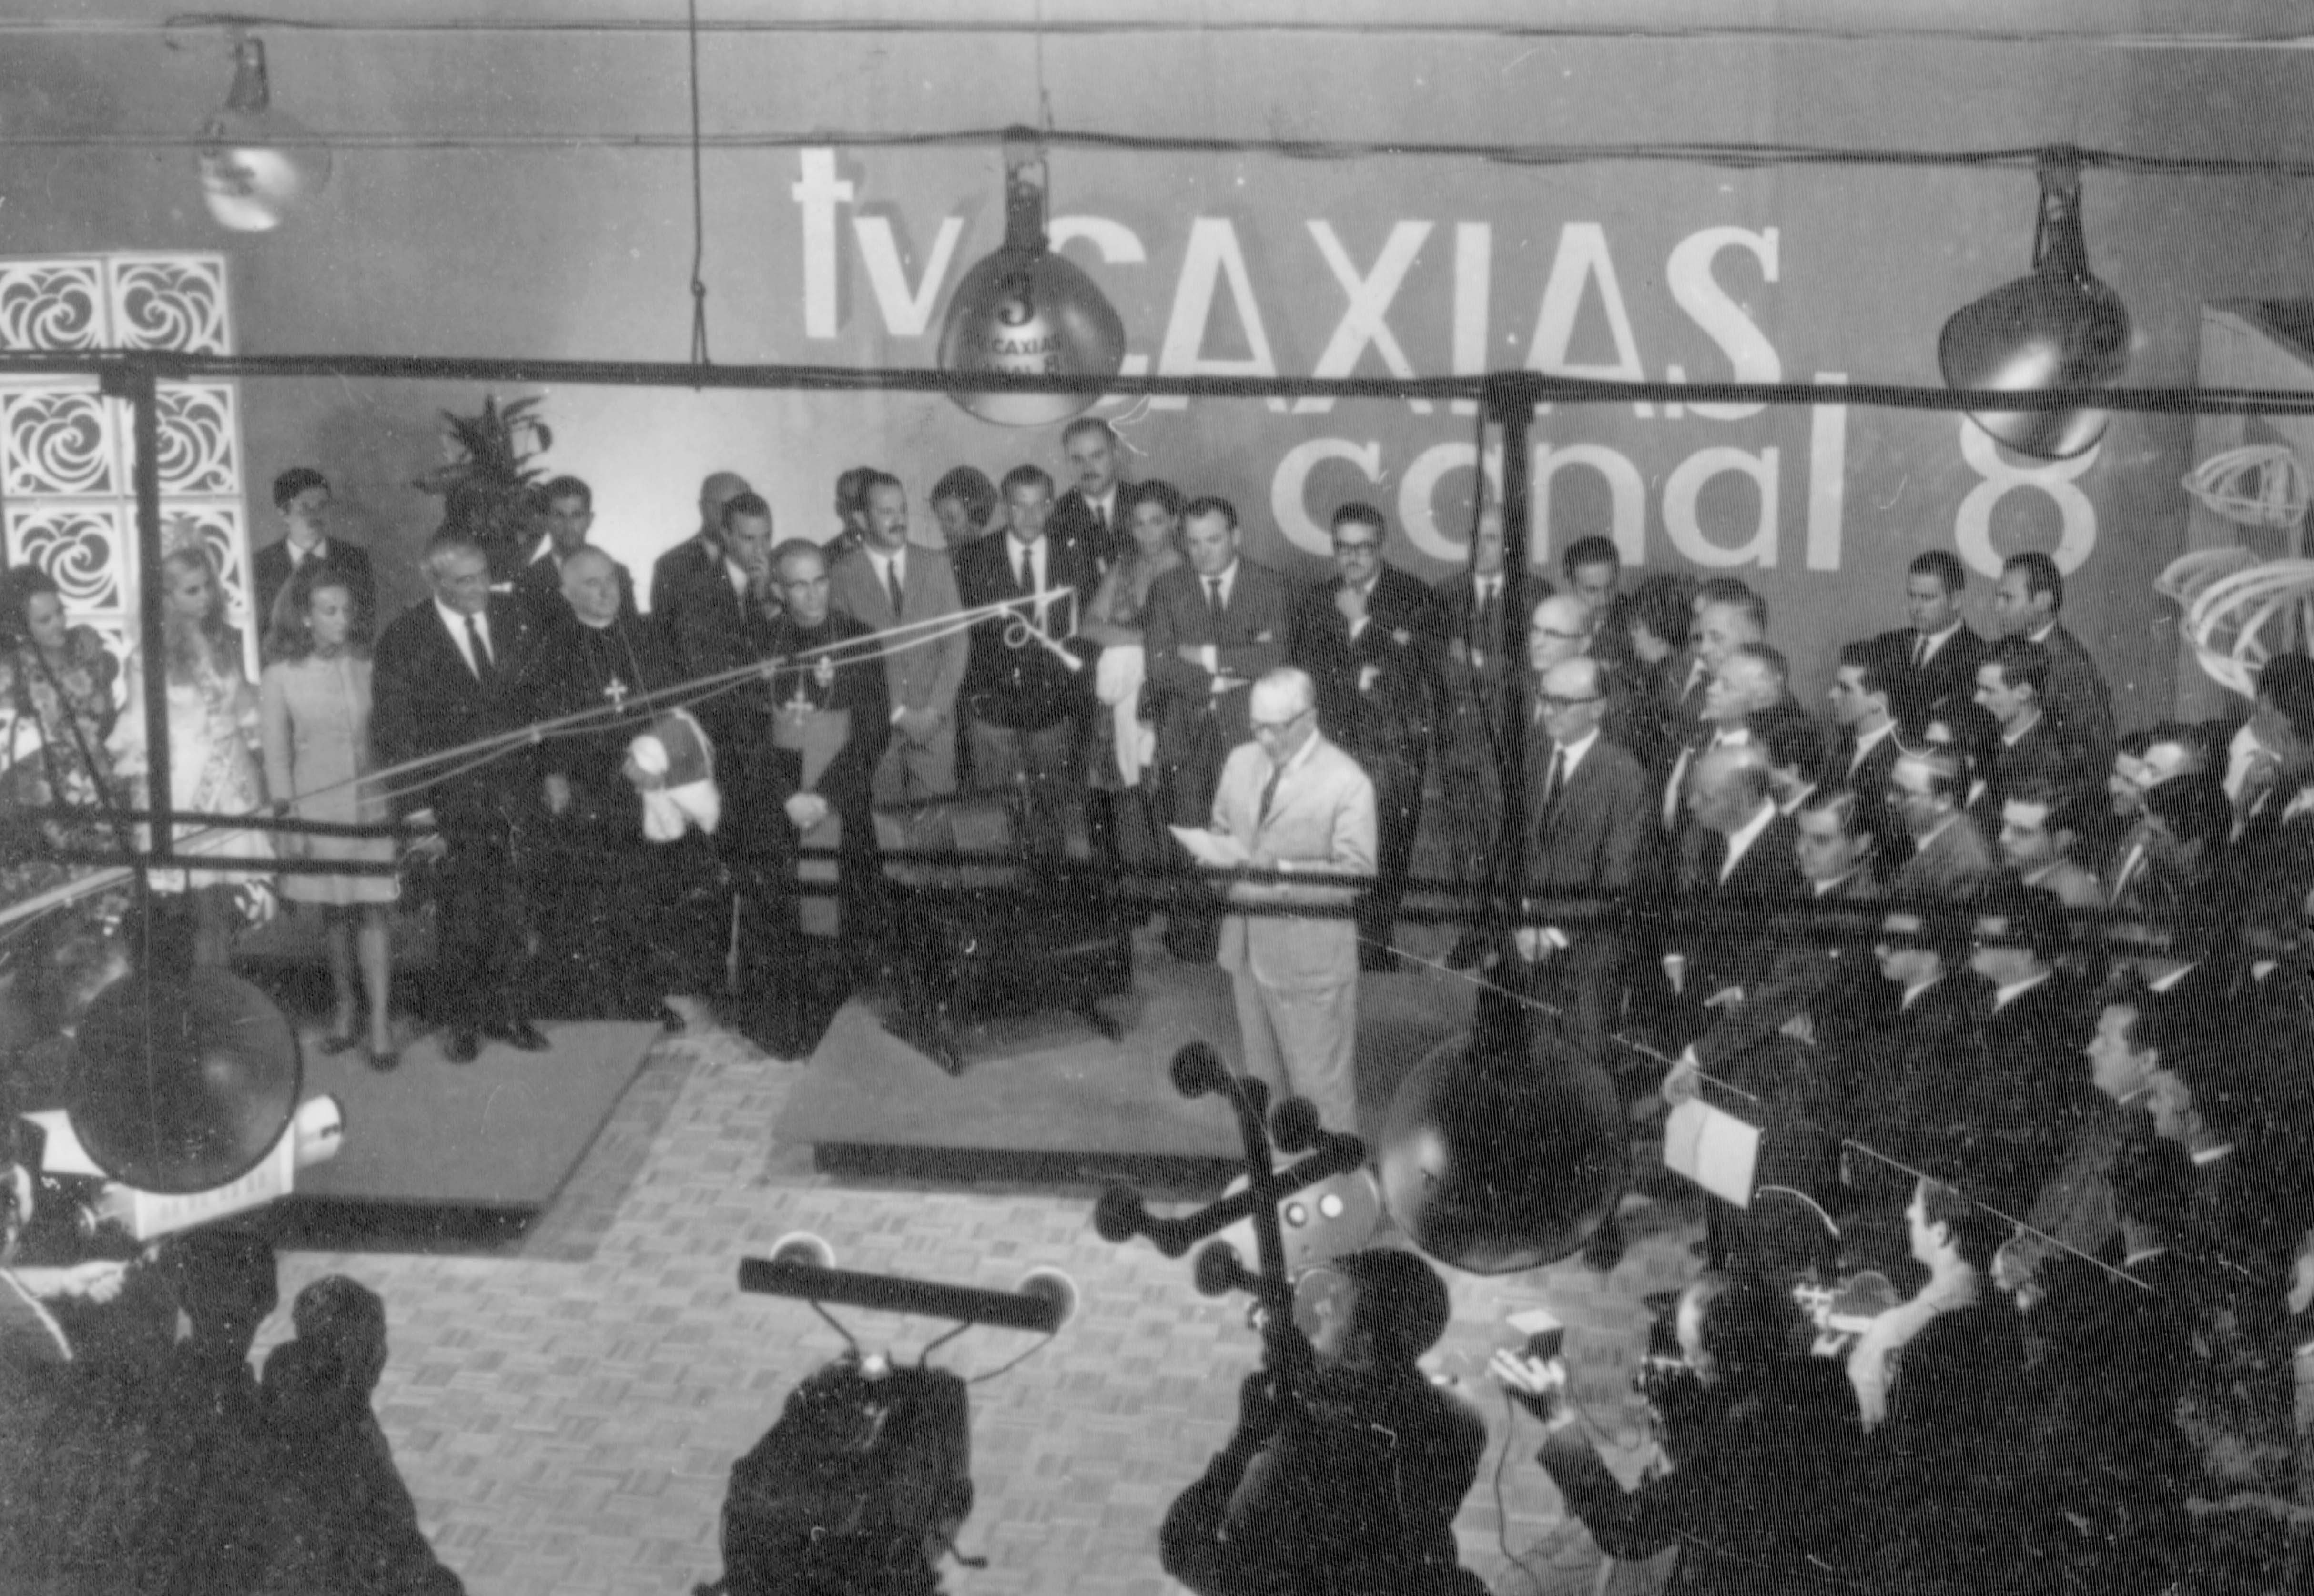 1969 - TV Caxias (now RBS TV Caxias) is inaugurated. It's the beginning of the Regional Network of Television (Rede Regional de Televisão).